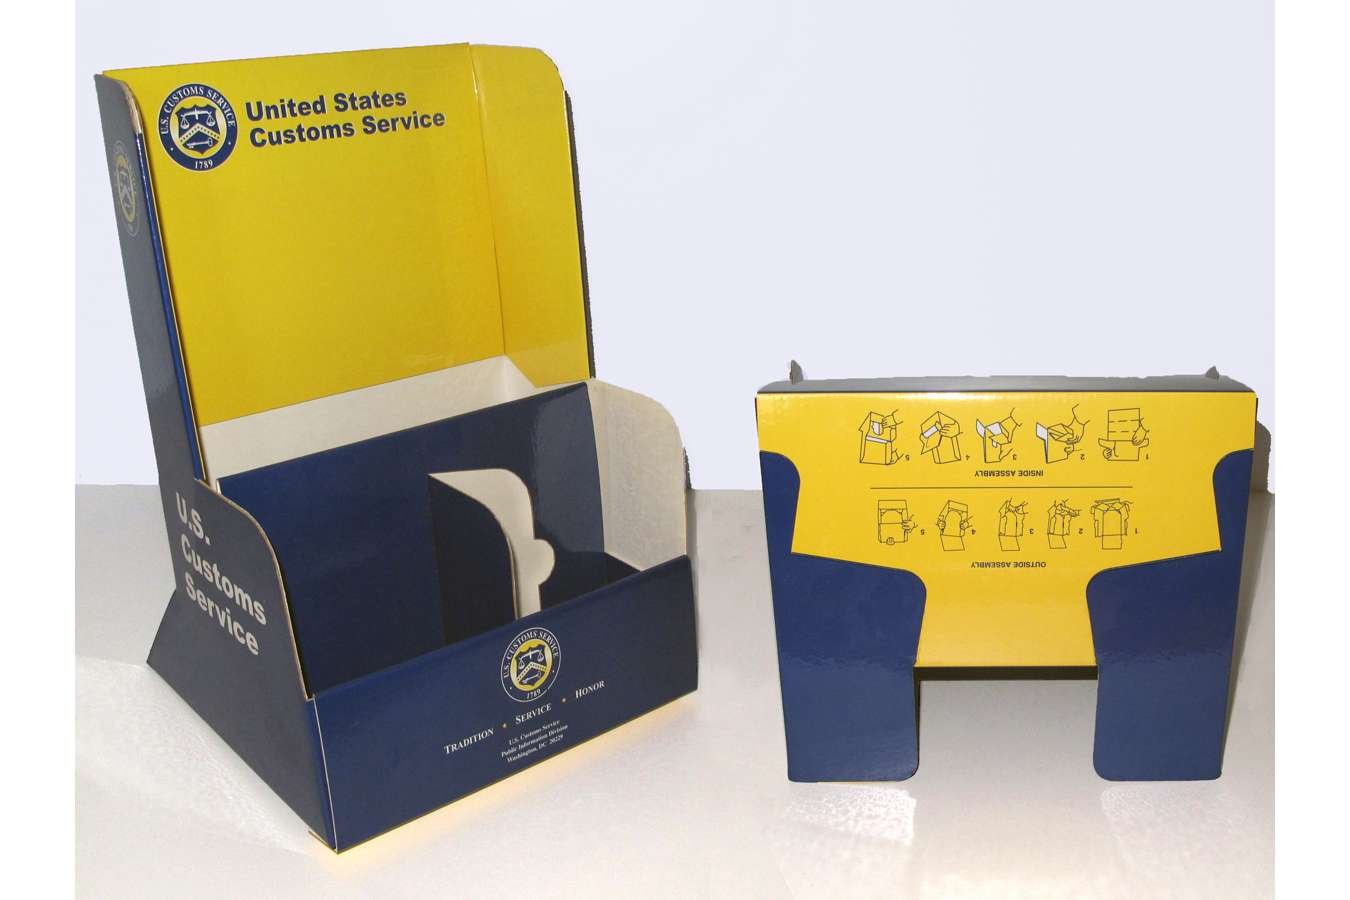 USCBP 6 Holder : US Customs brochure holders used at airports and ports of entry to the USA